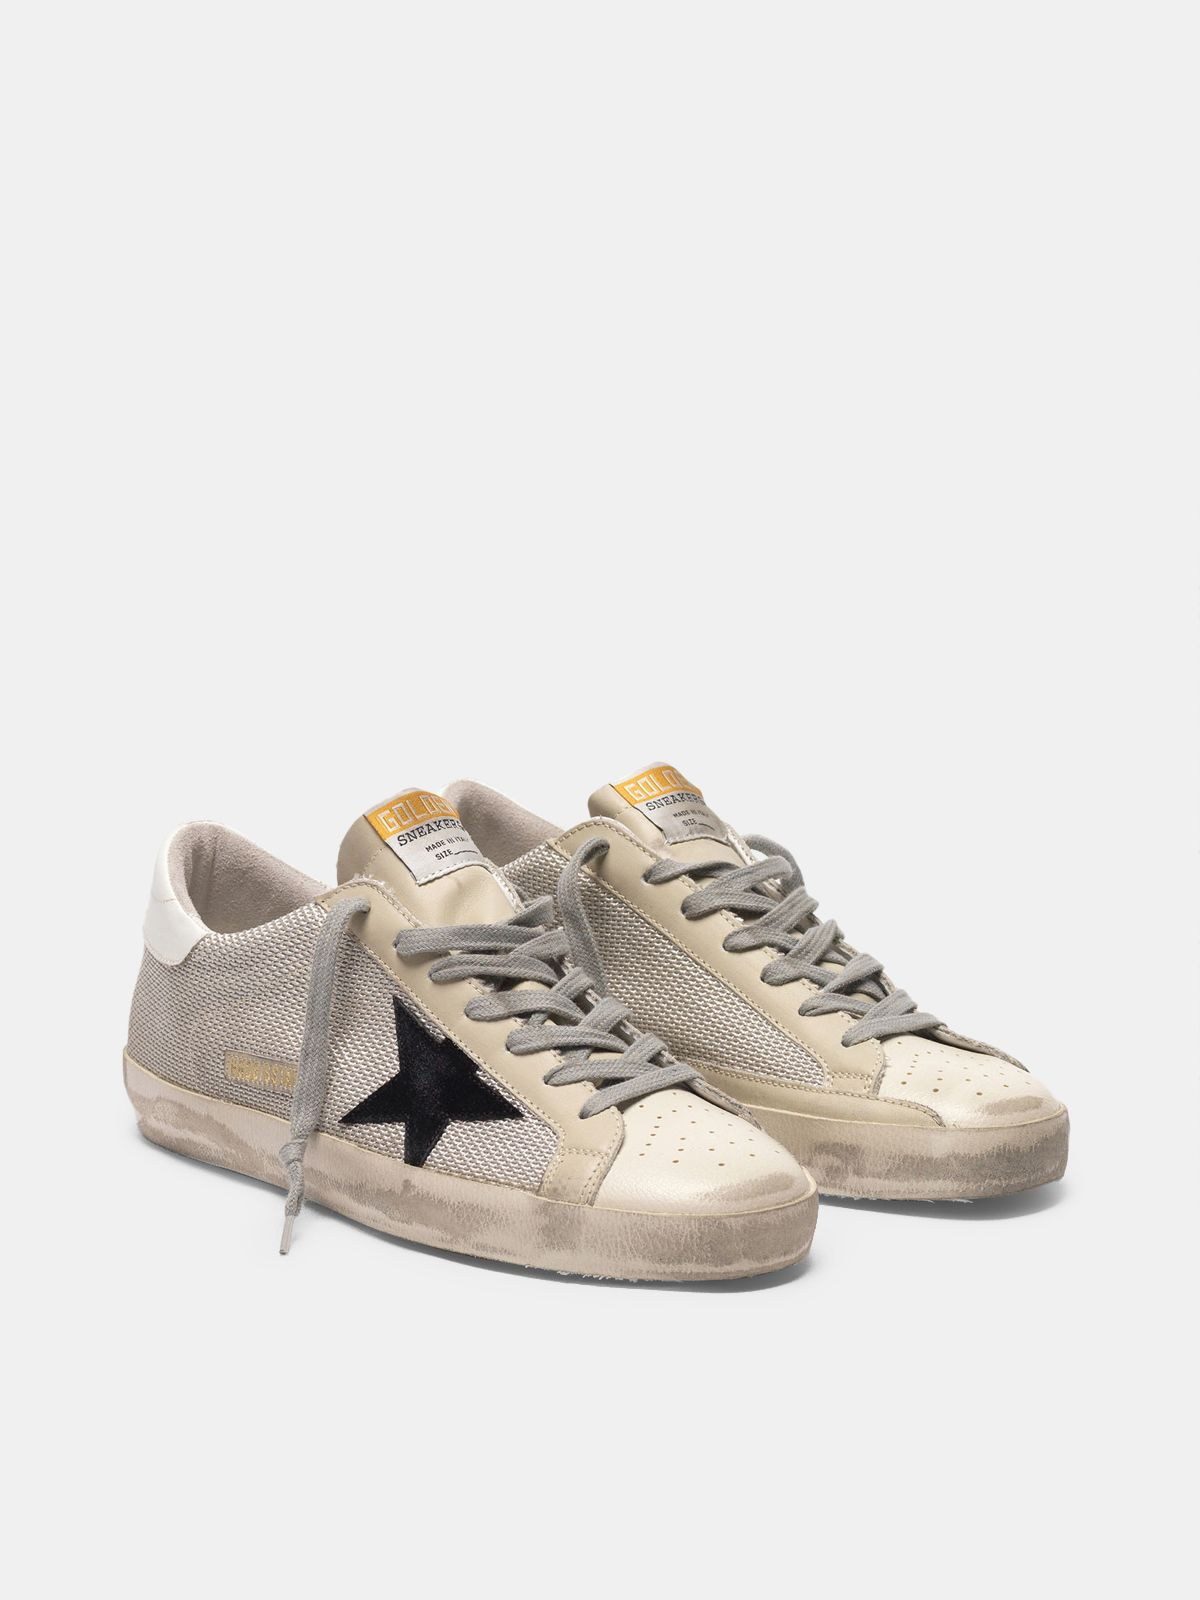 Golden Goose - Super-Star sneakers in leather with mesh insert in